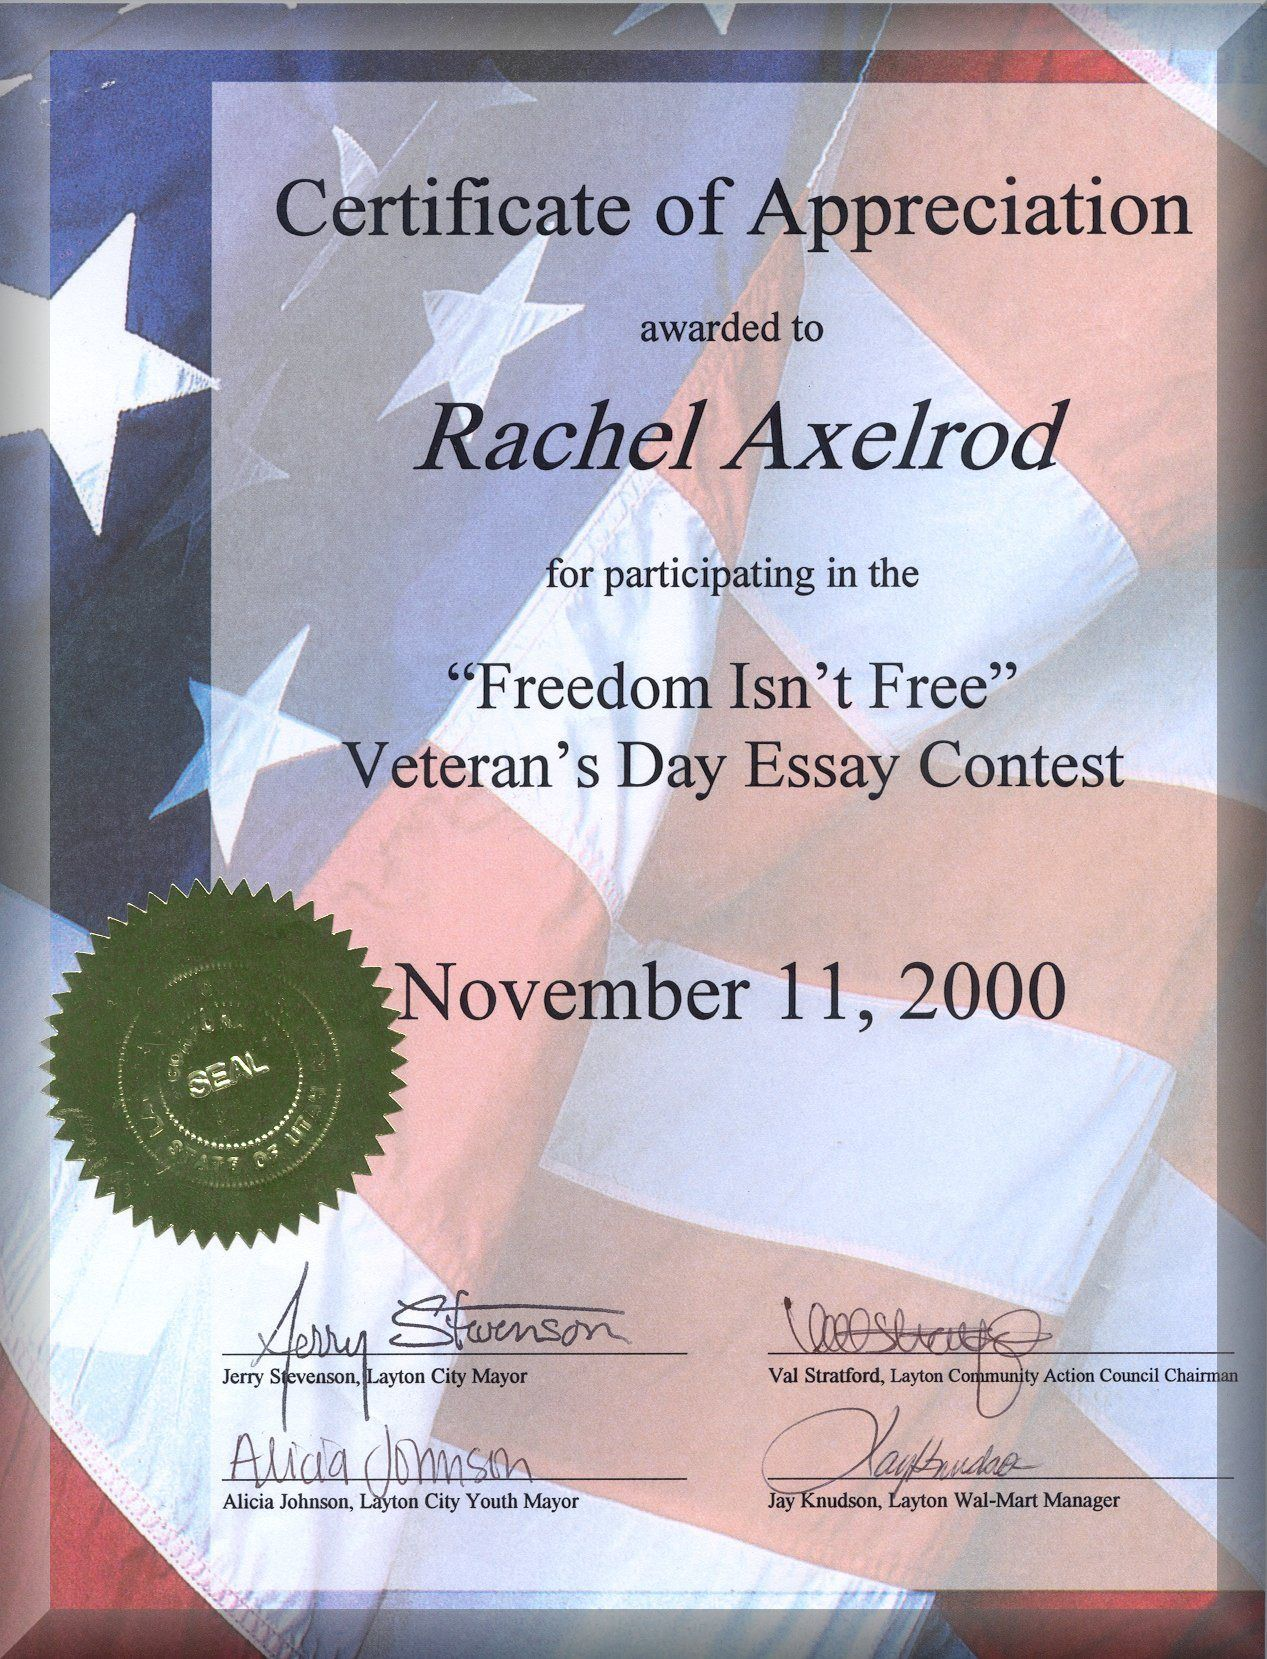 veteran certificate of appreciation printable related pictures award free award certificate templates pictures